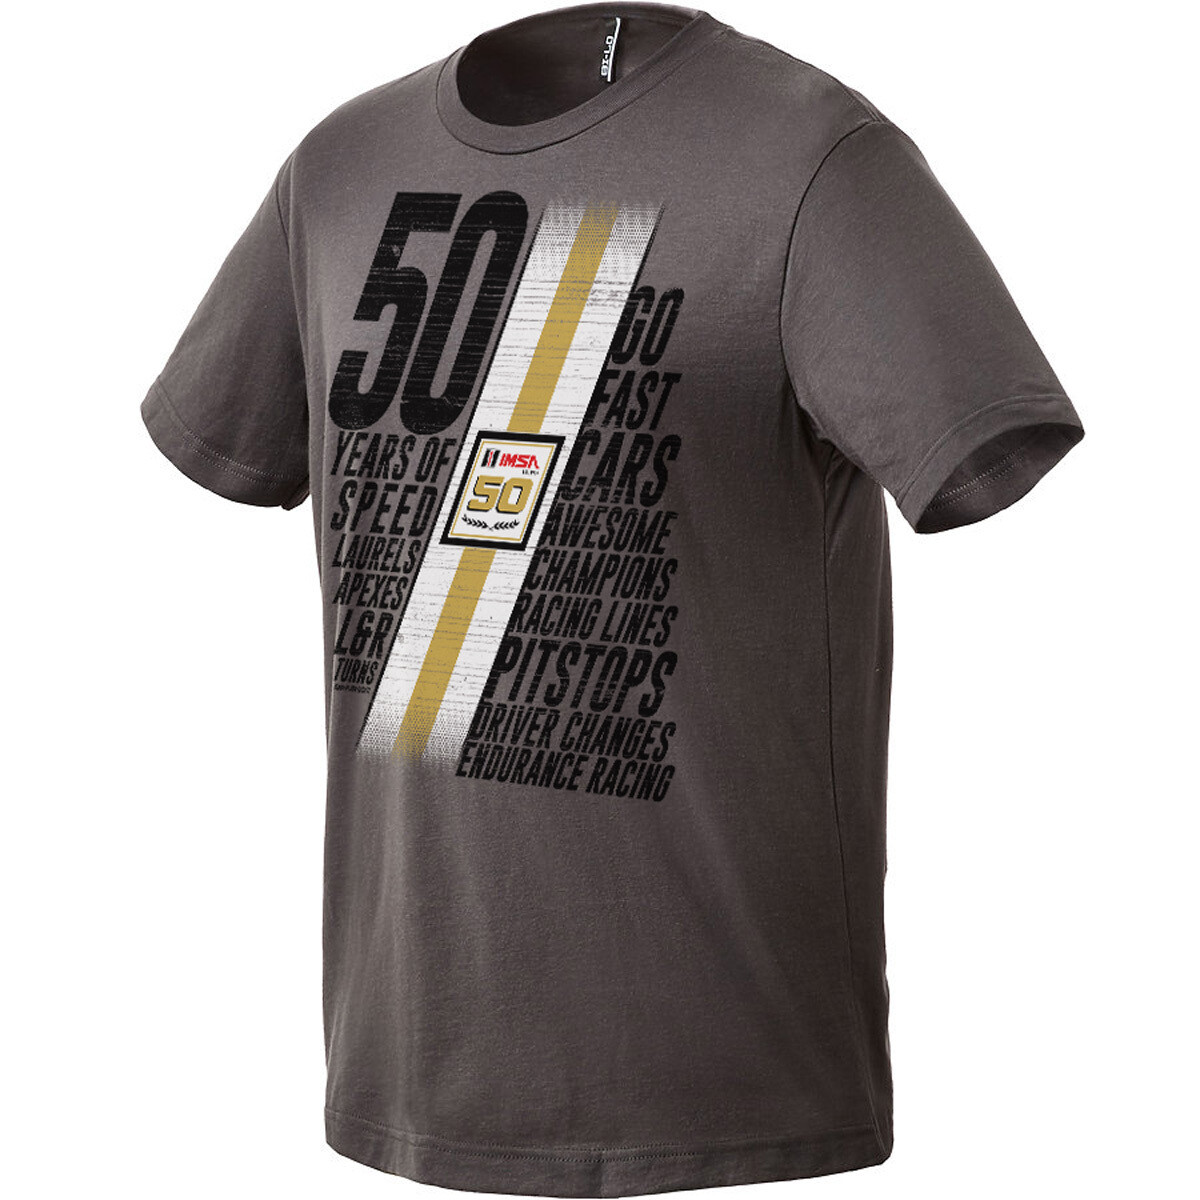 IMSA 50th Anniversary Words Tee - Warm Grey